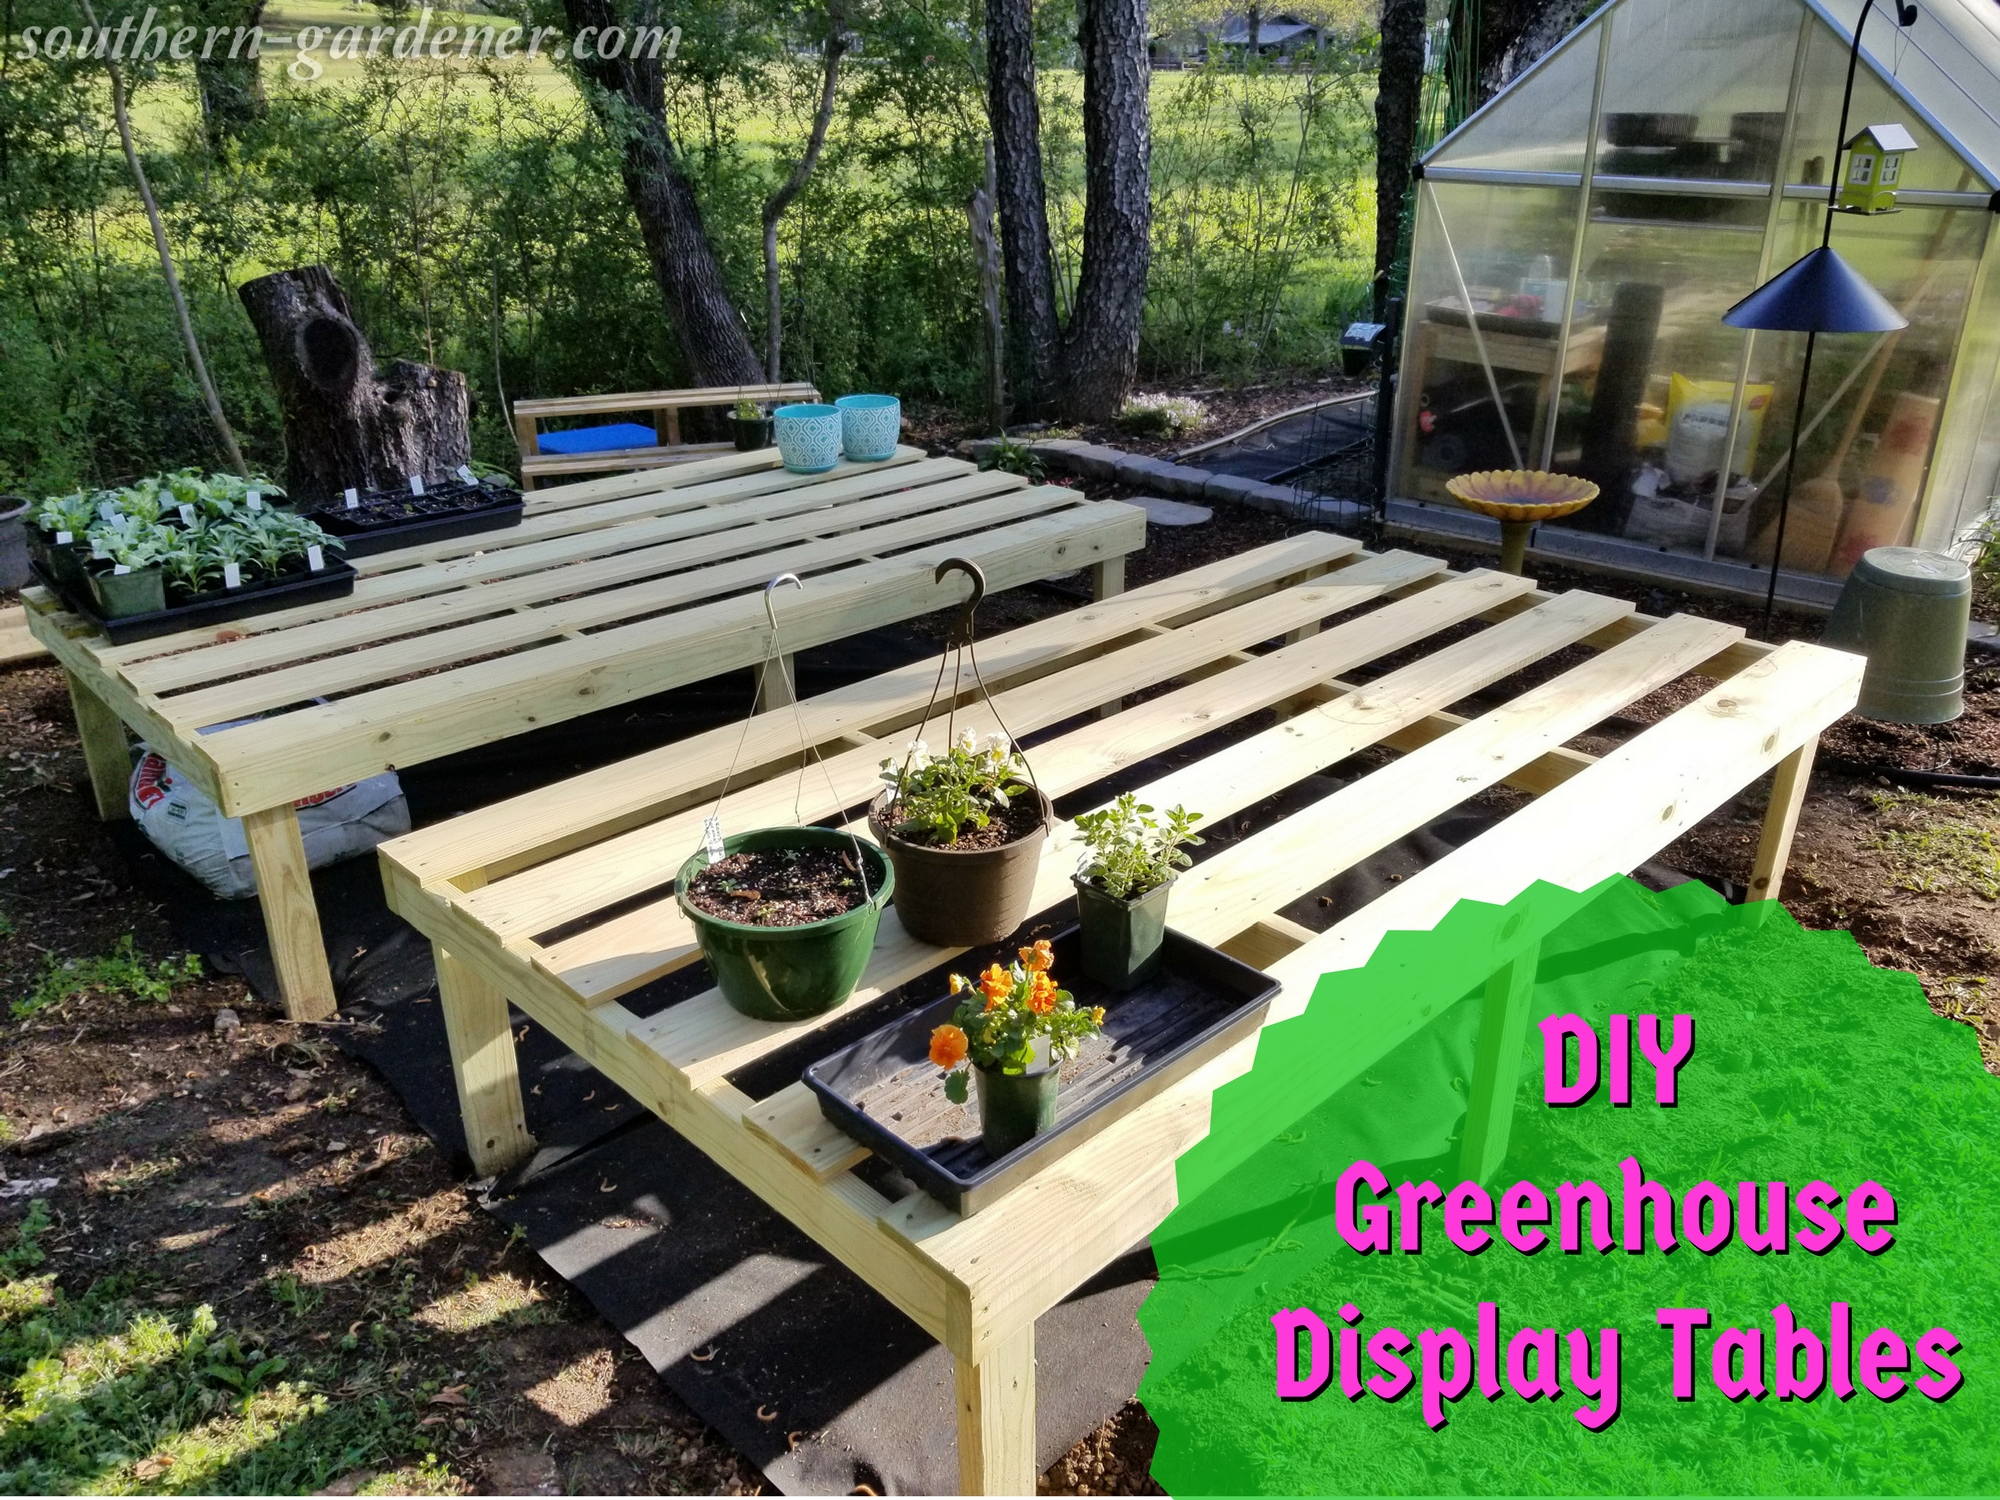 DIY Greenhouse Display Tables